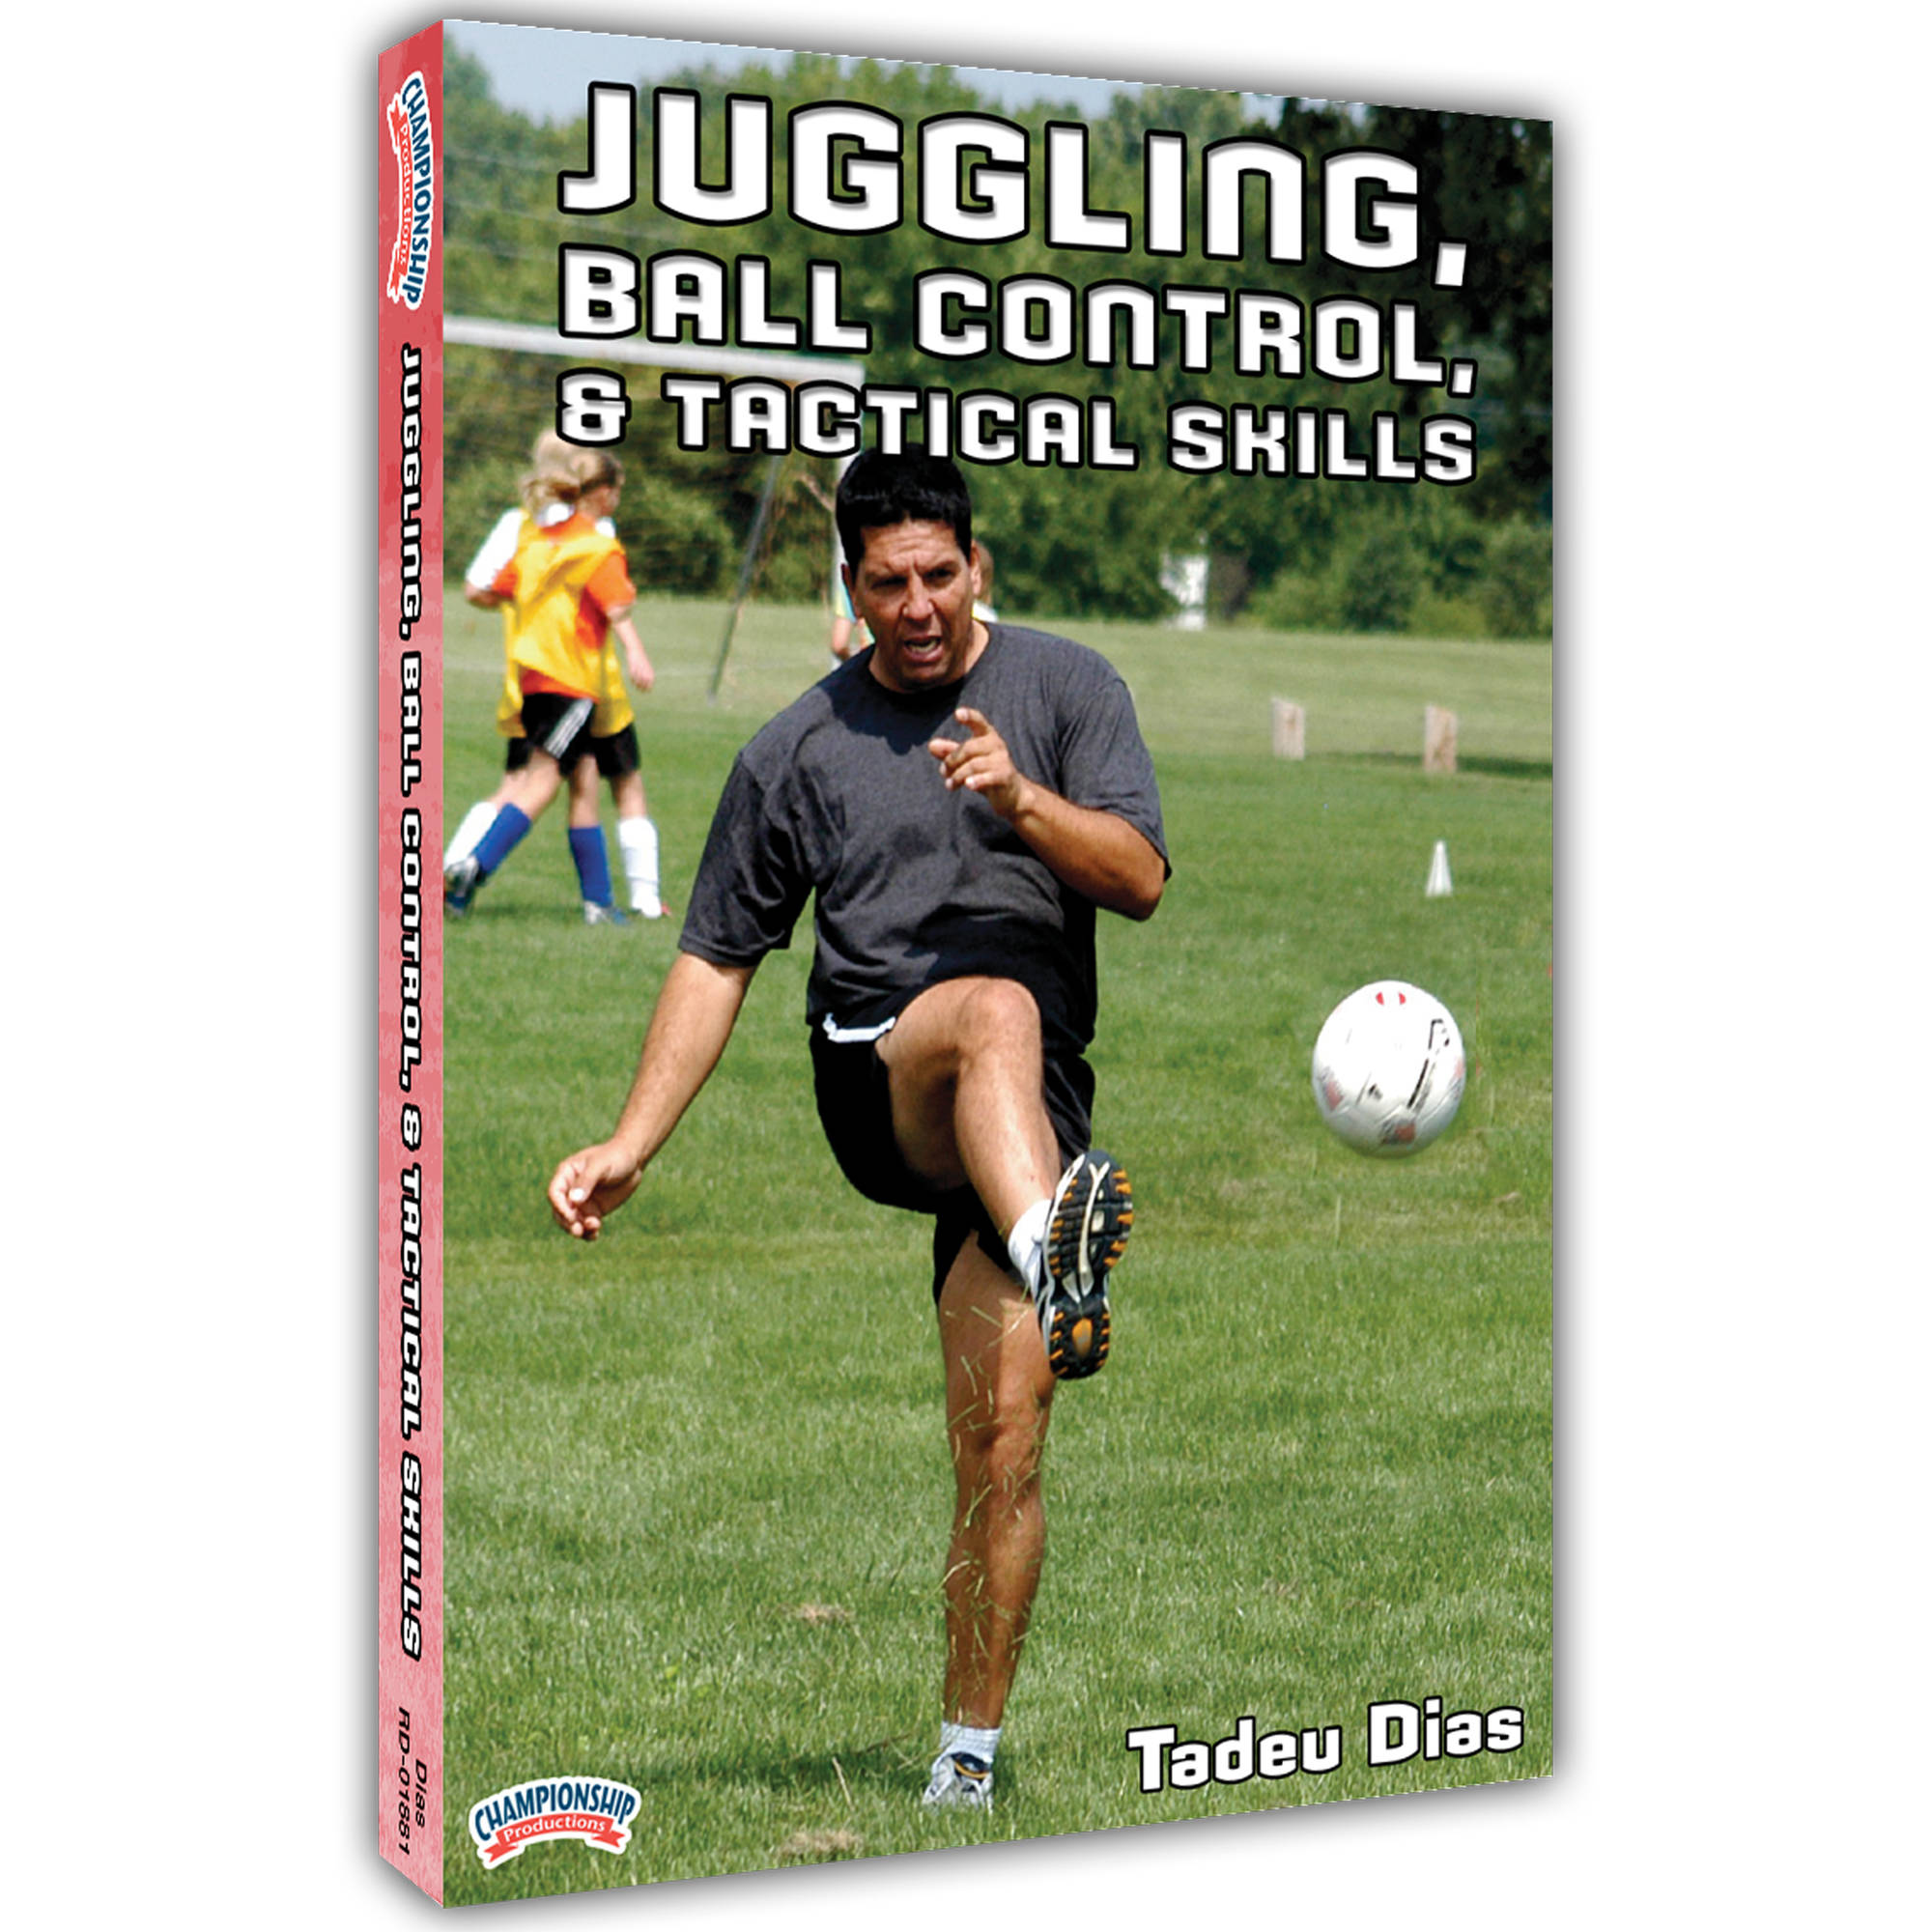 Championship Productions Juggling, Ball Control and Tactical Skills DVD